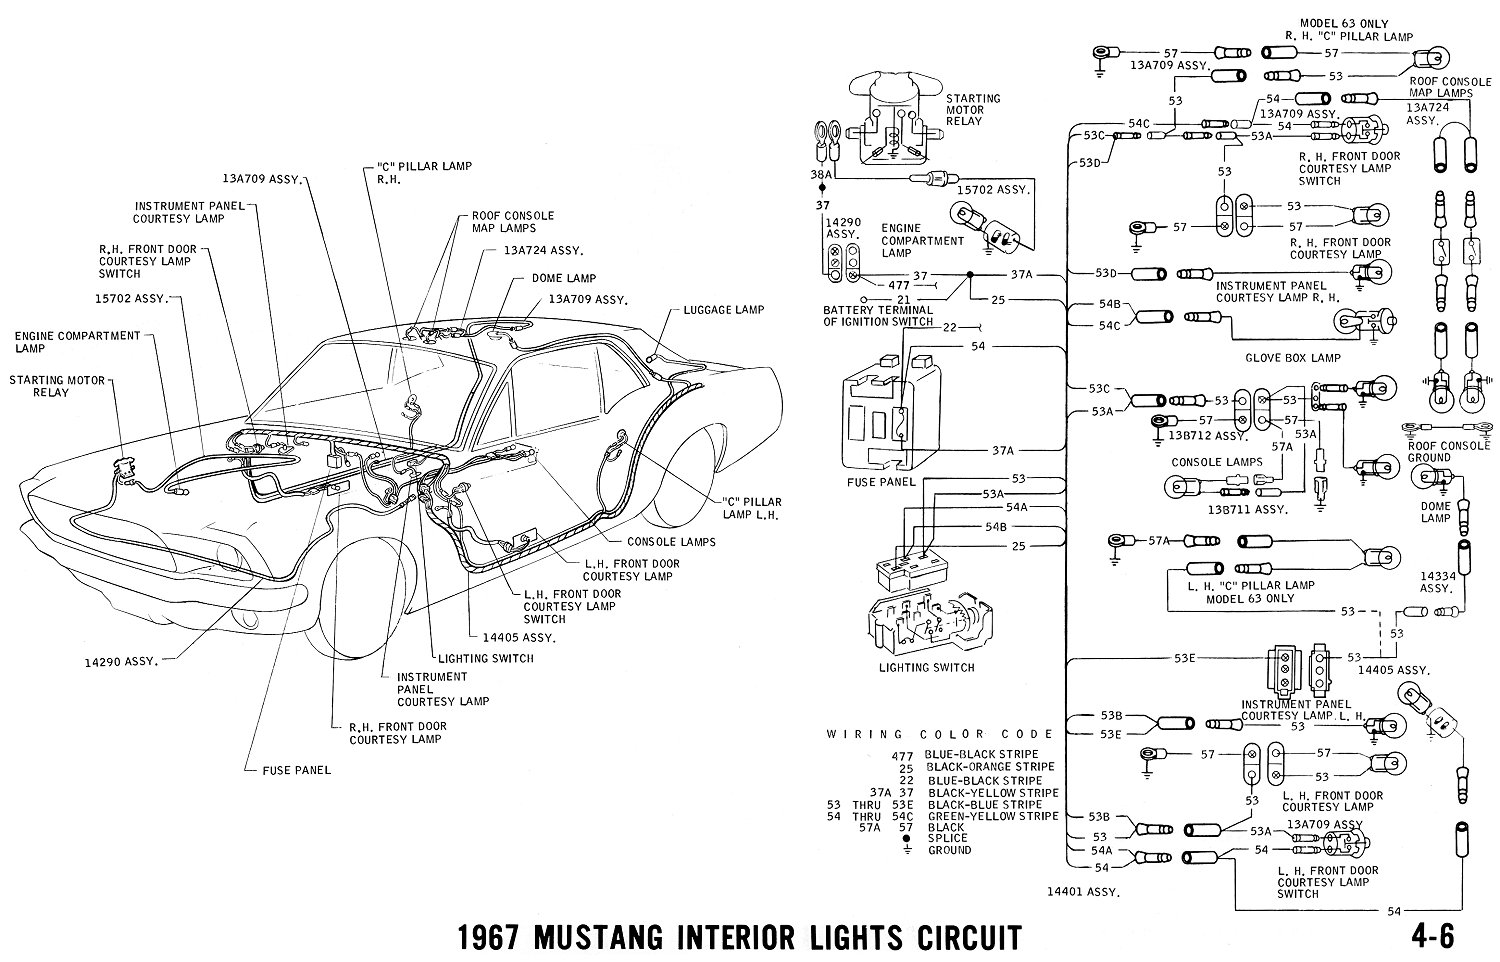 hight resolution of 1967 ford mustang wire harness diagram wiring library1967 ford mustang wire harness diagram